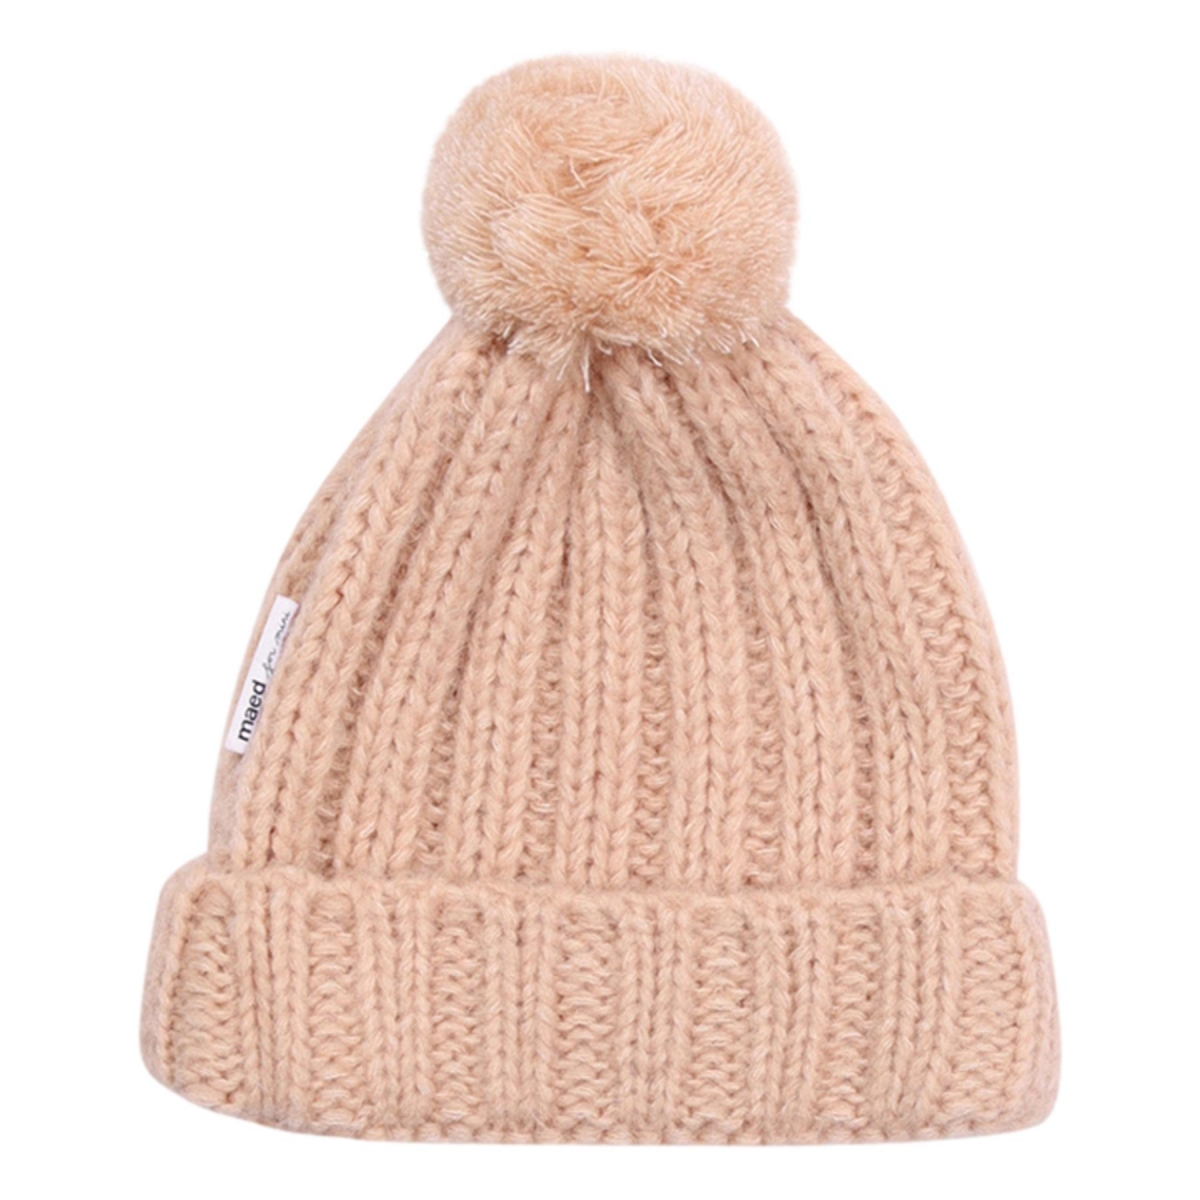 Maed for mini - Knit Hat peach parrot - 1